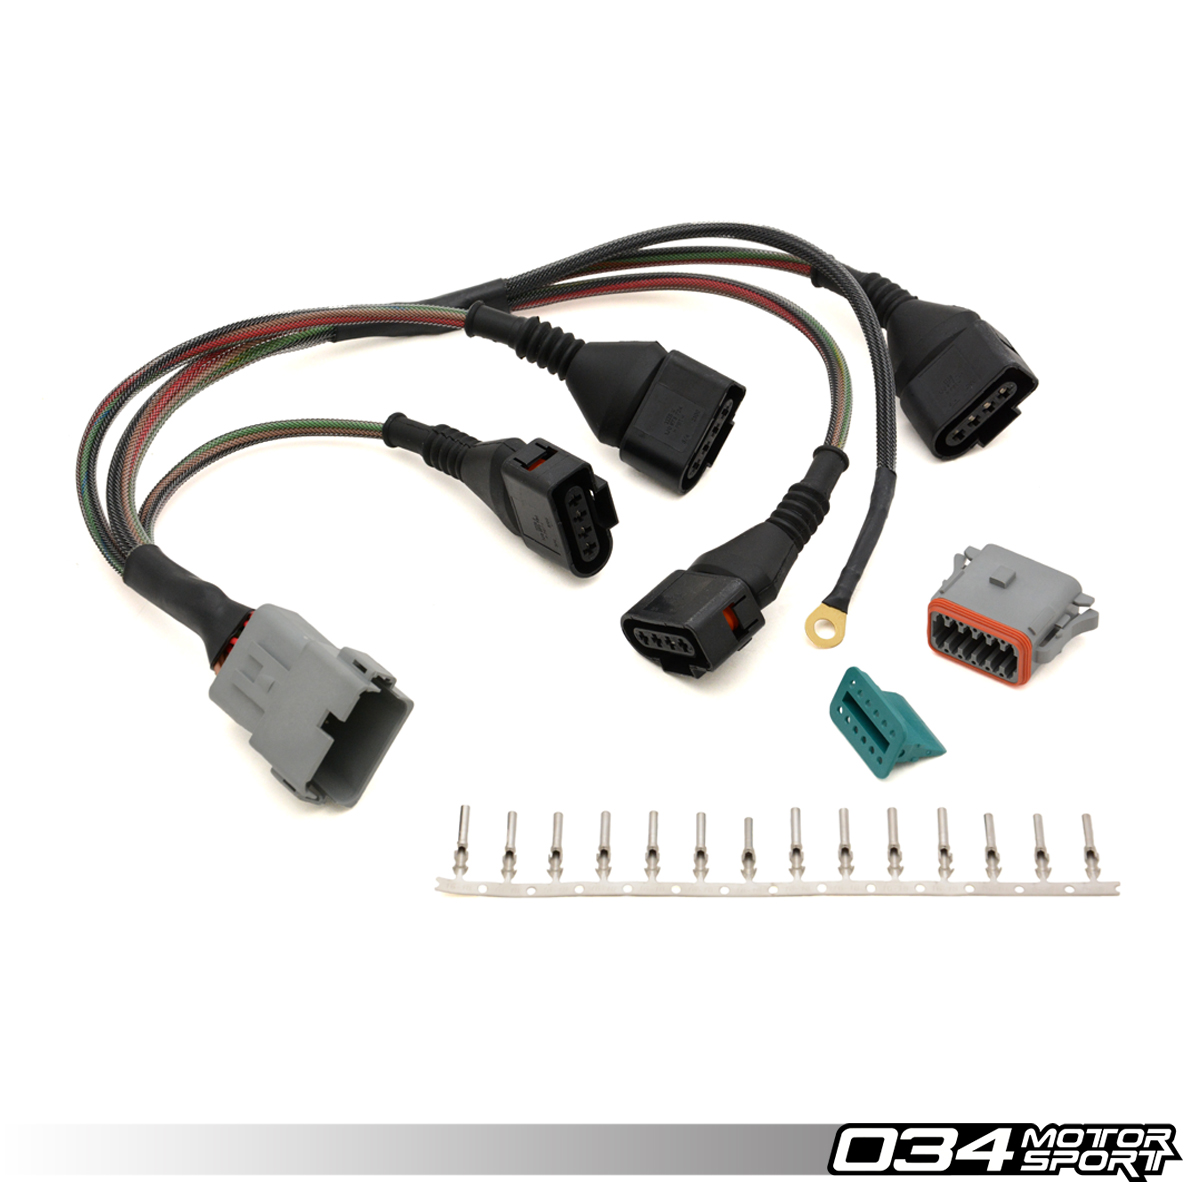 Repair/Update Harness, Audi/Volkswagen 1.8T with 4-Wire Coils ...